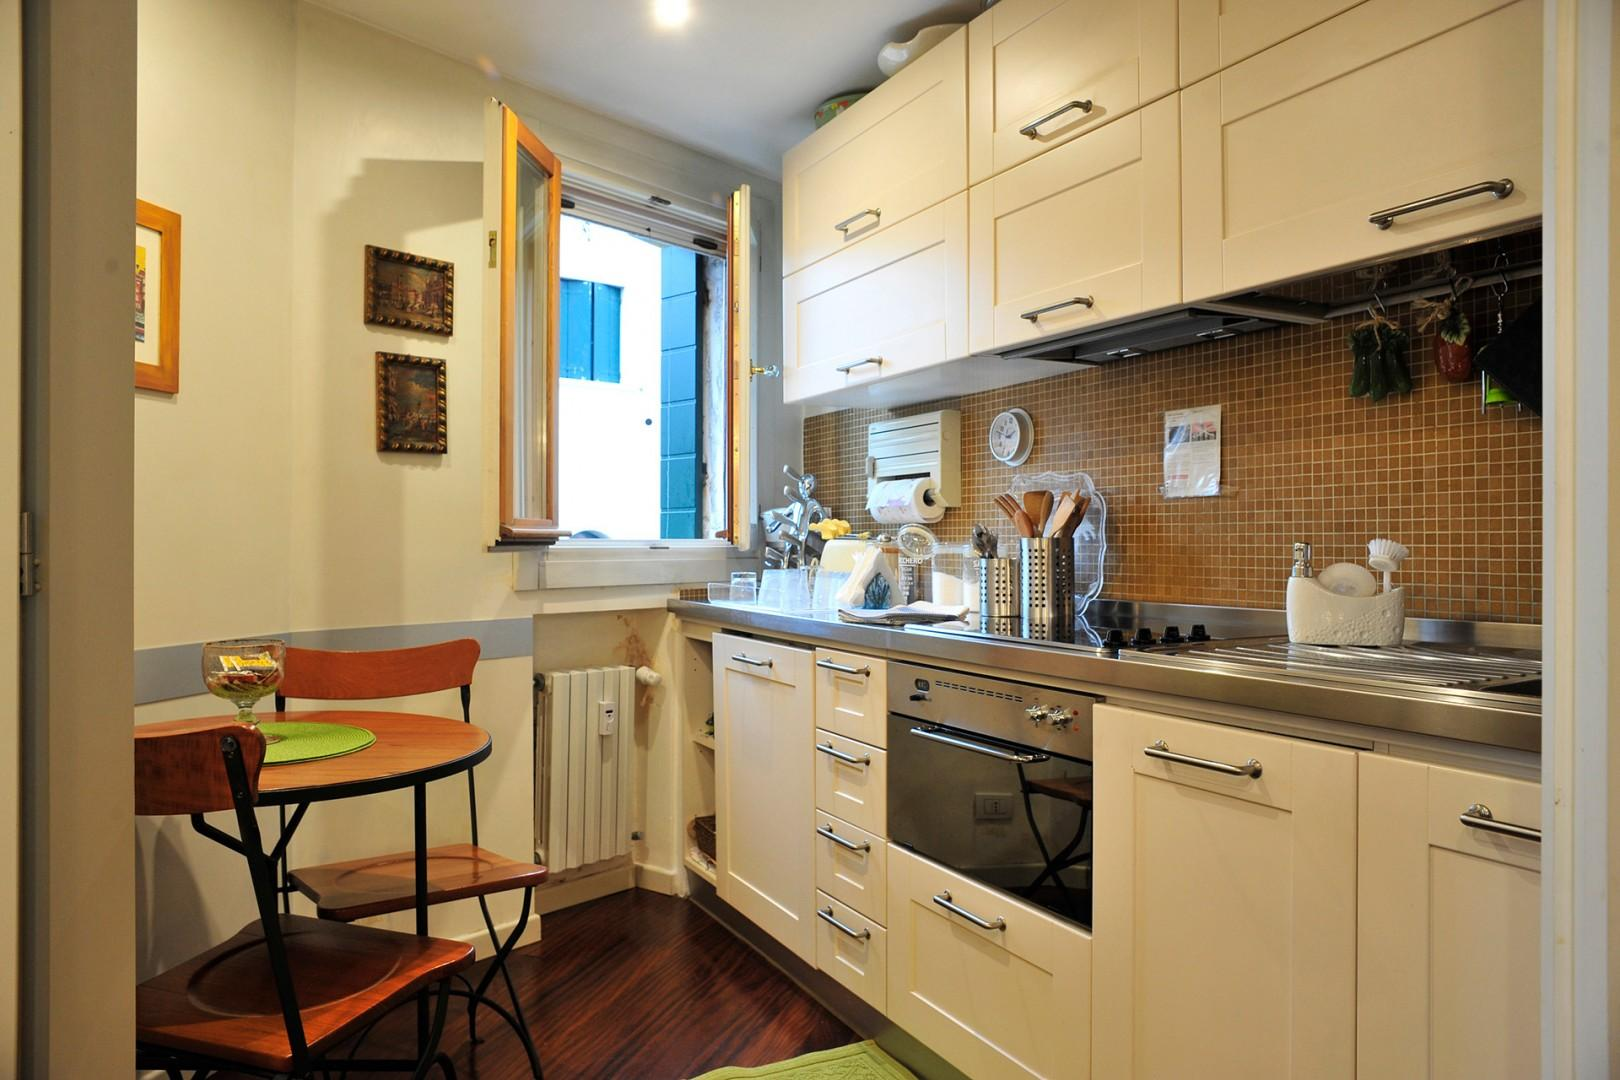 The small complete kitchen of Serenata has a breakfast table and pretty view out the window.